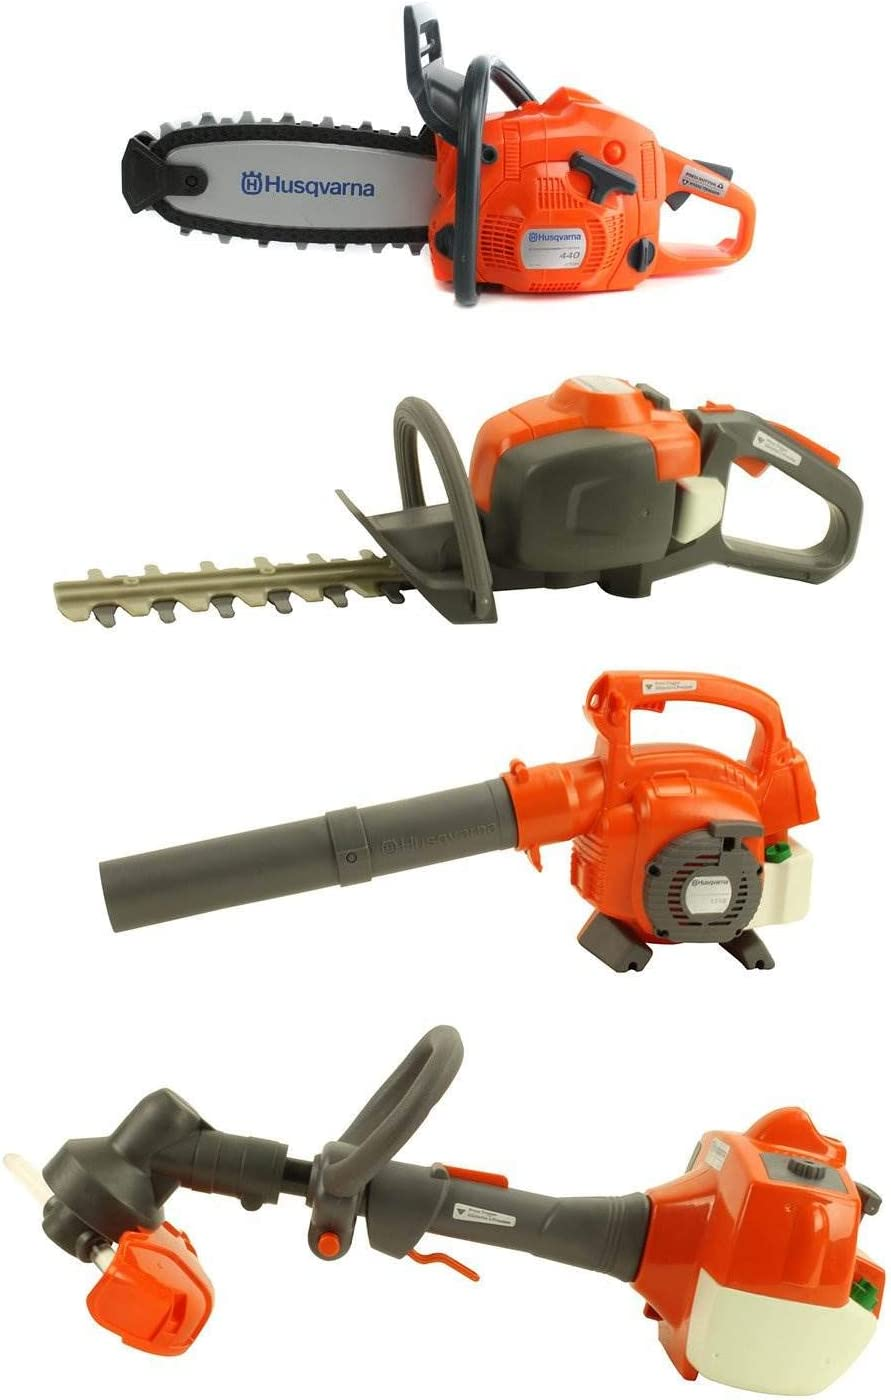 Husqvarna Kids Toy Play Set Chainsaw Hedge Trimmer Leaf Blower Weed Eater